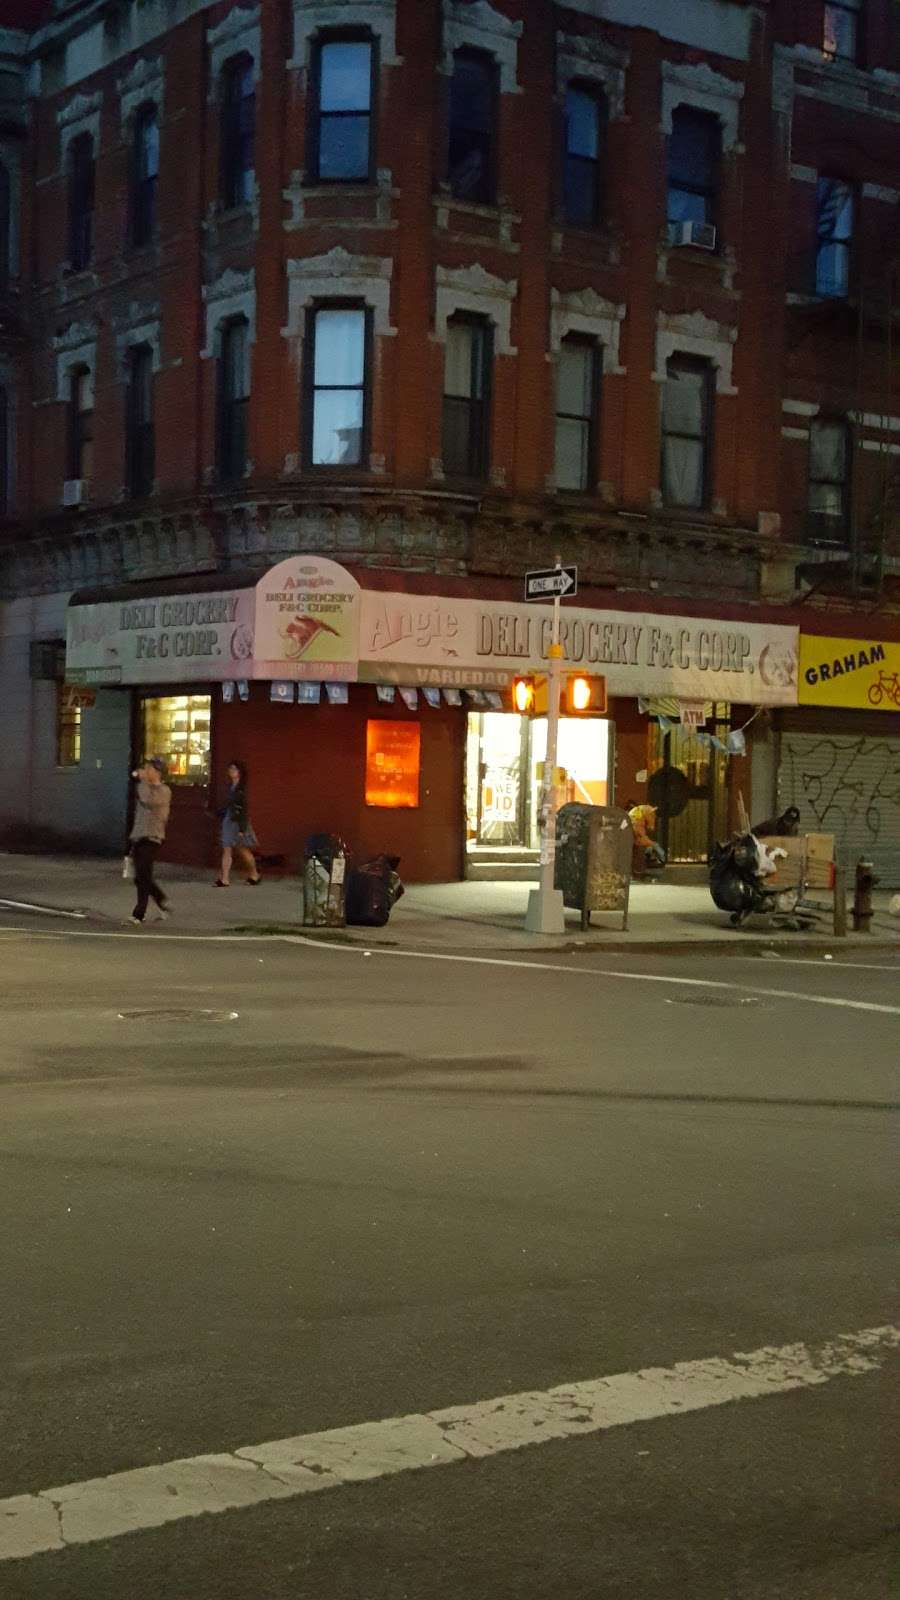 Angies Deli & Grocery - store  | Photo 2 of 3 | Address: 182 Graham Ave # A, Brooklyn, NY 11206, USA | Phone: (718) 384-2909